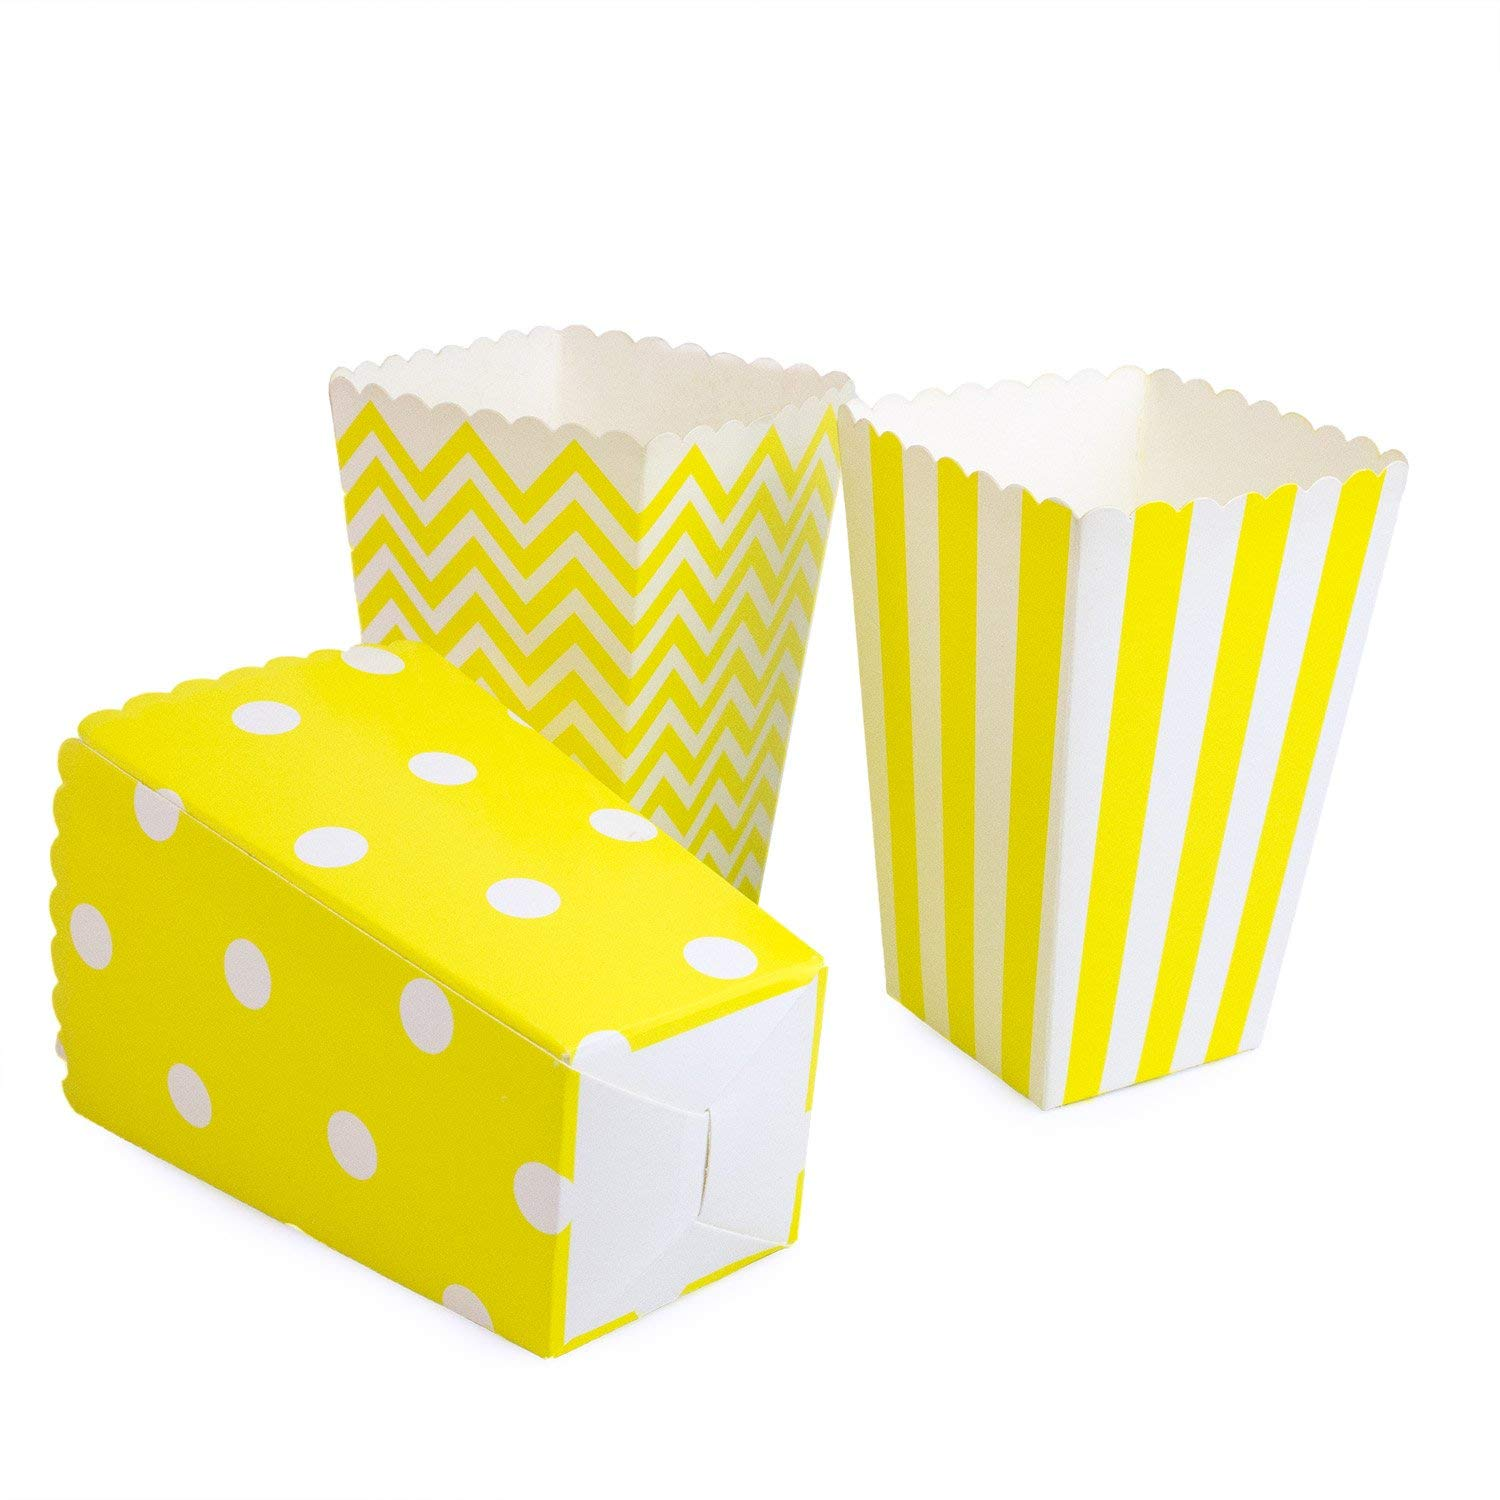 30 Pieces Popcorn Boxes Paper Mini Popcorn Containers Candy Snack Party Favor Boxes for Carnival Parties Birthday Movie Nights, Yellow